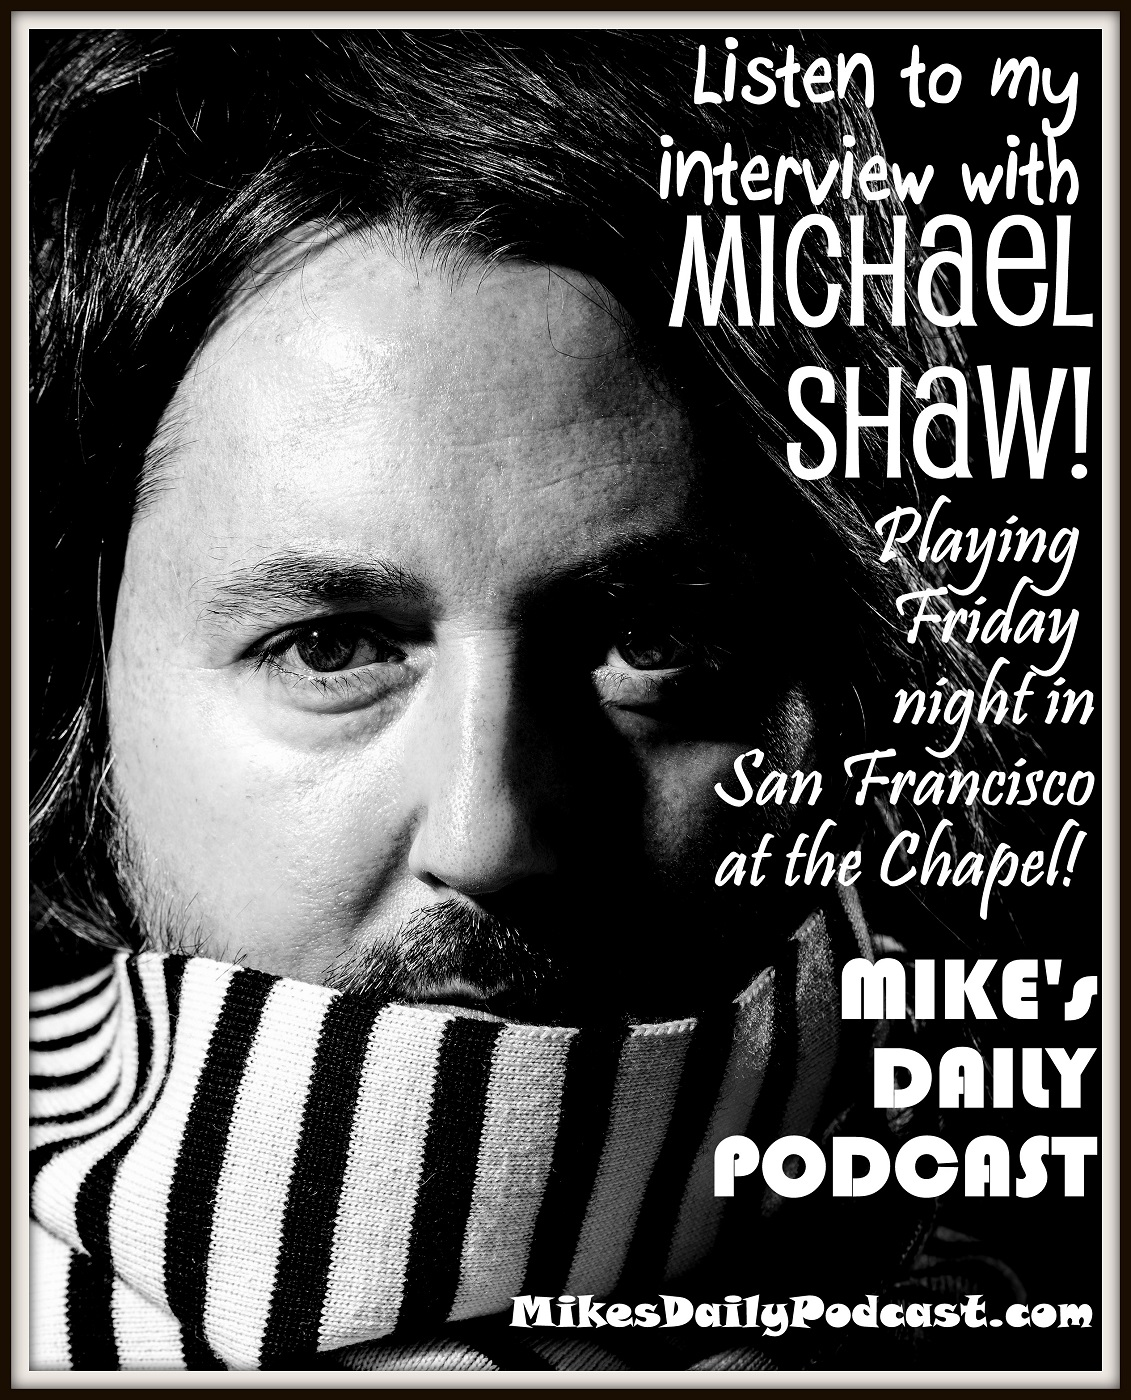 MIKEs DAILY PODCAST 8-4-15 An Intimate Evening With Michael Shaw